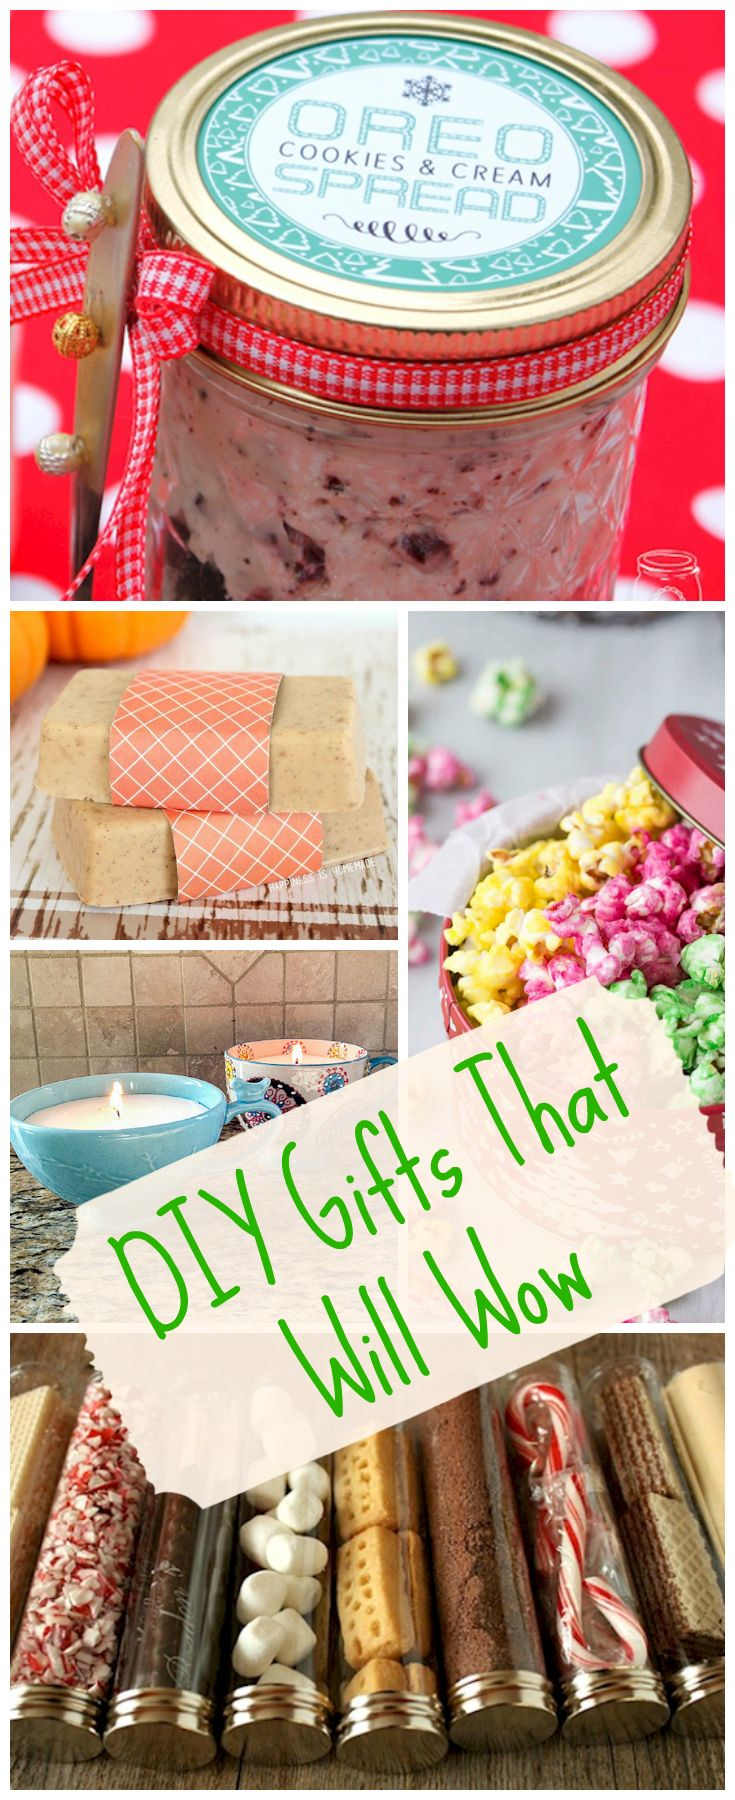 Do you love to DIY? Create unique homemade gifts on the cheap with ...